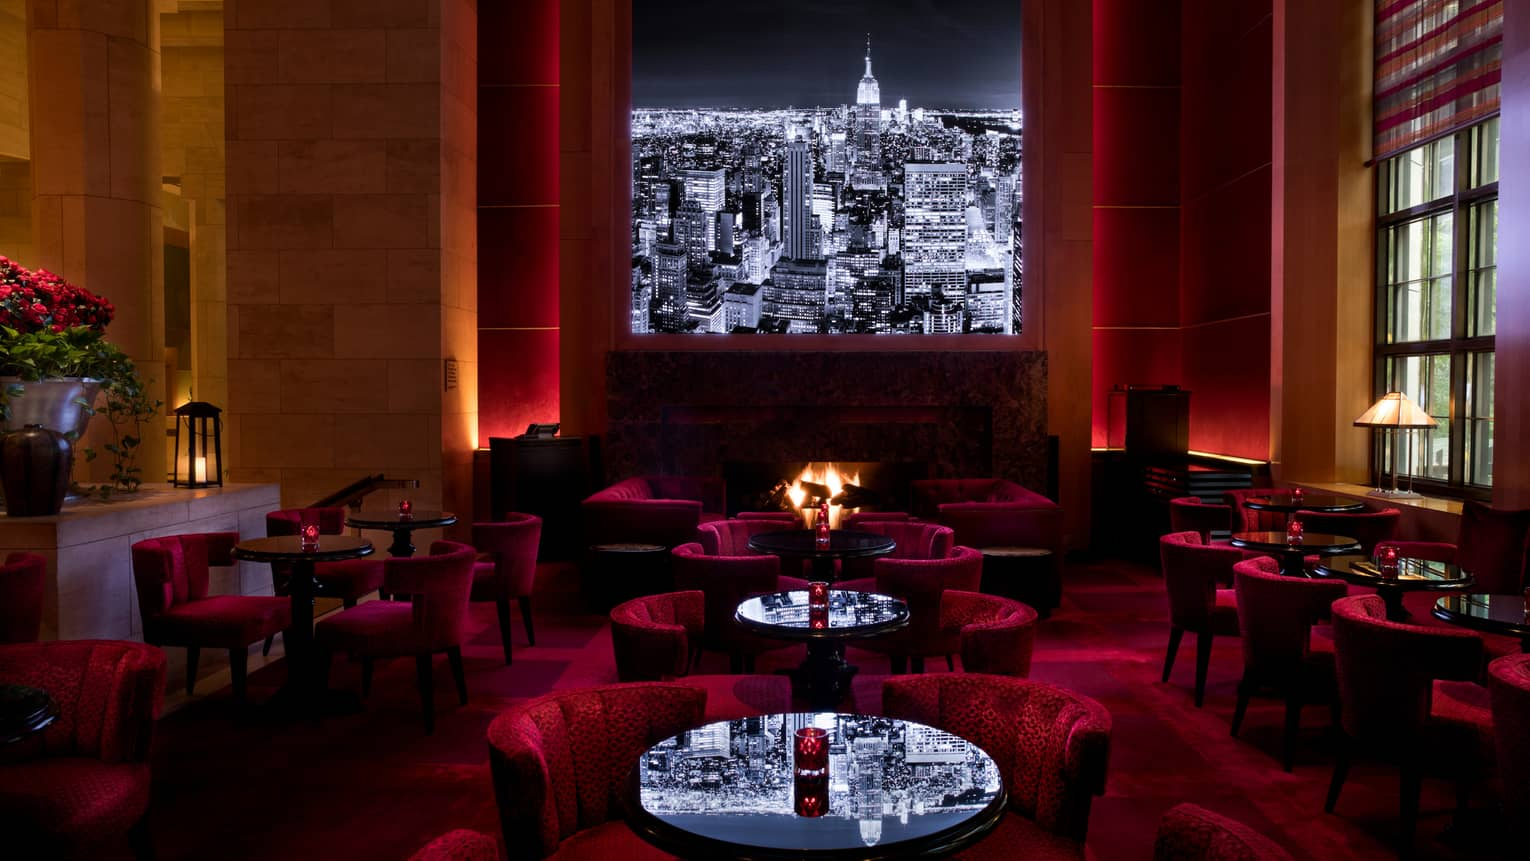 Black-and-white city skyline image above red velvet lounge chairs, cocktail tables